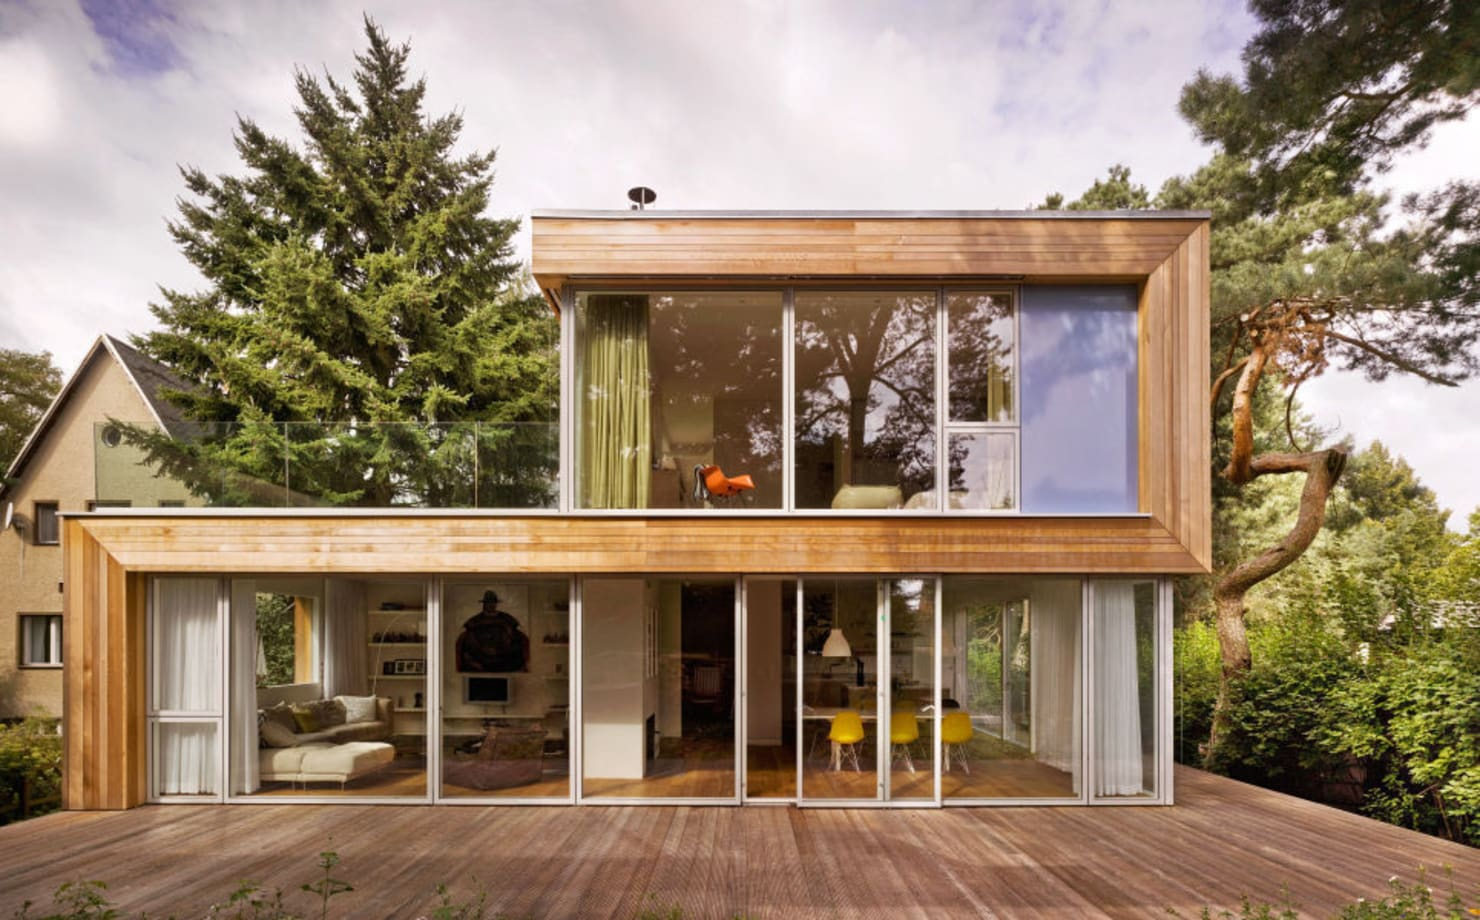 This Wonderful Wooden House Draws Your Gaze